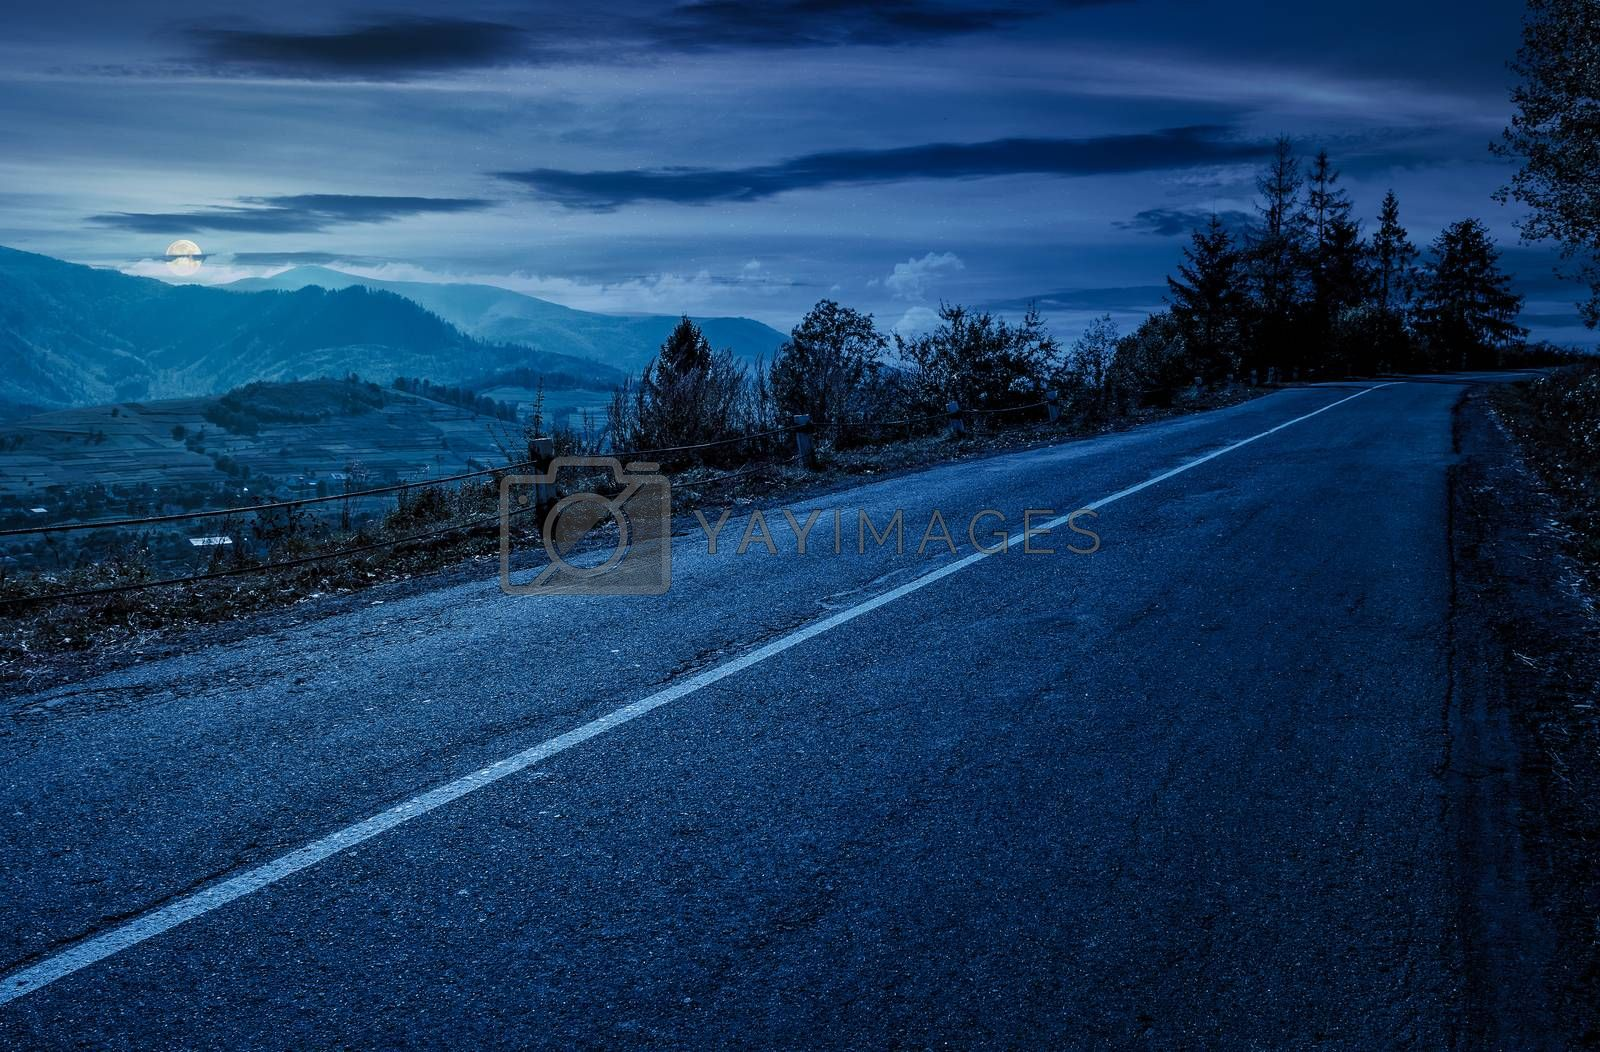 countryside road through mountains at night by Pellinni